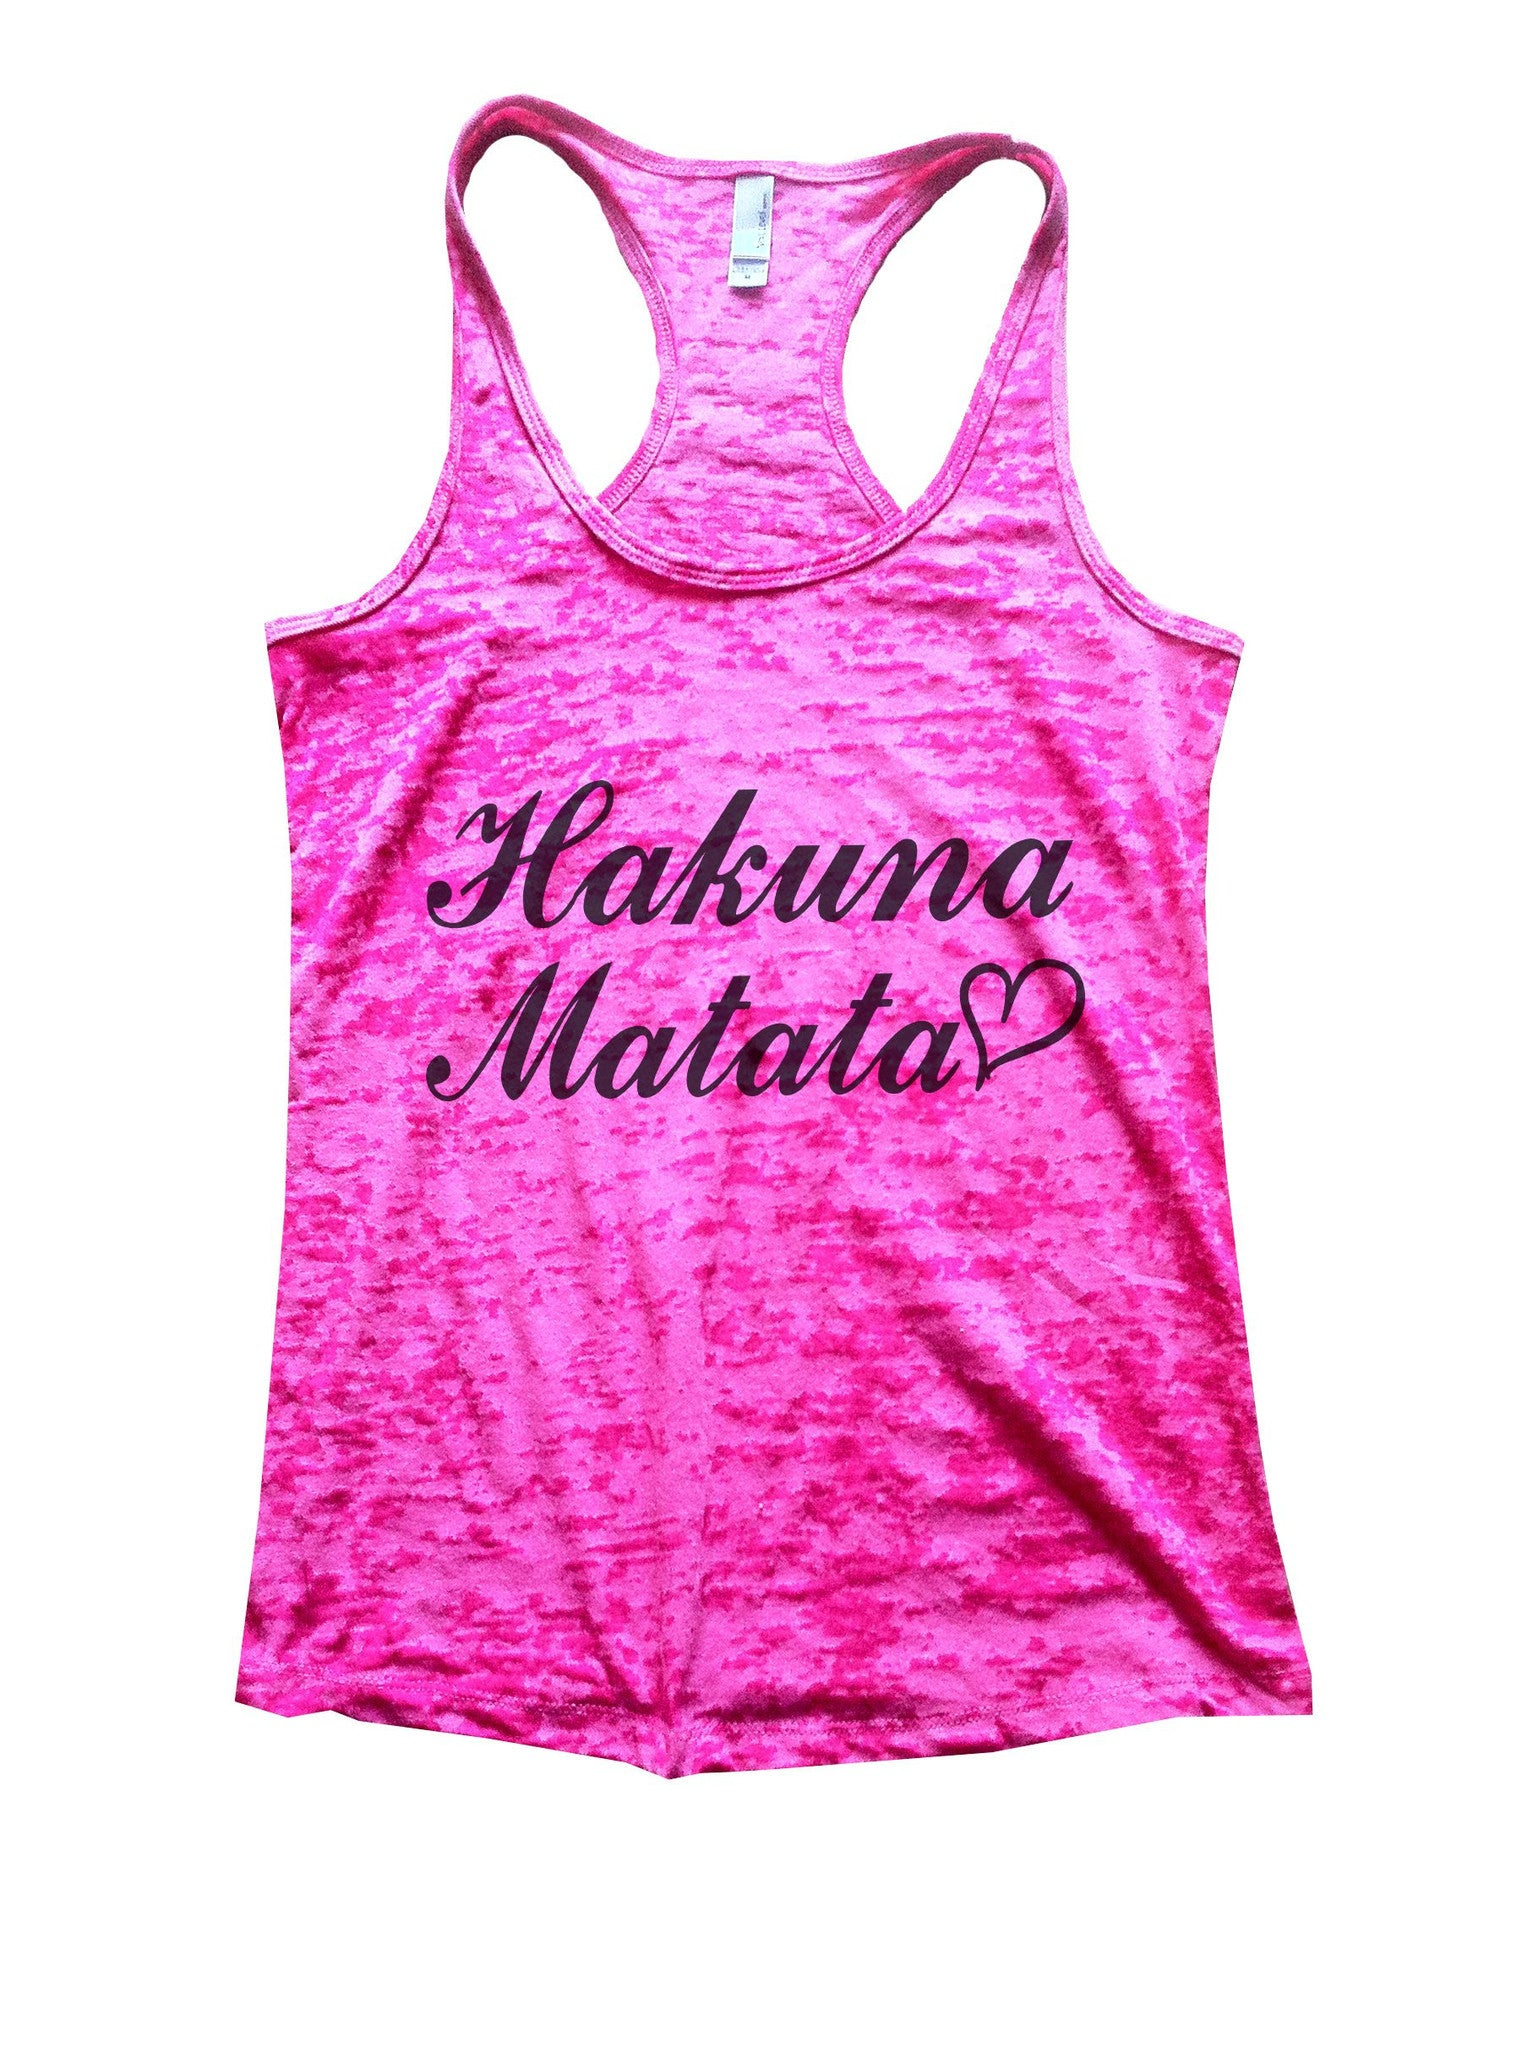 Hakuna Matata Burnout Tank Top By BurnoutTankTops.com - 937 - Funny Shirts Tank Tops Burnouts and Triblends  - 7